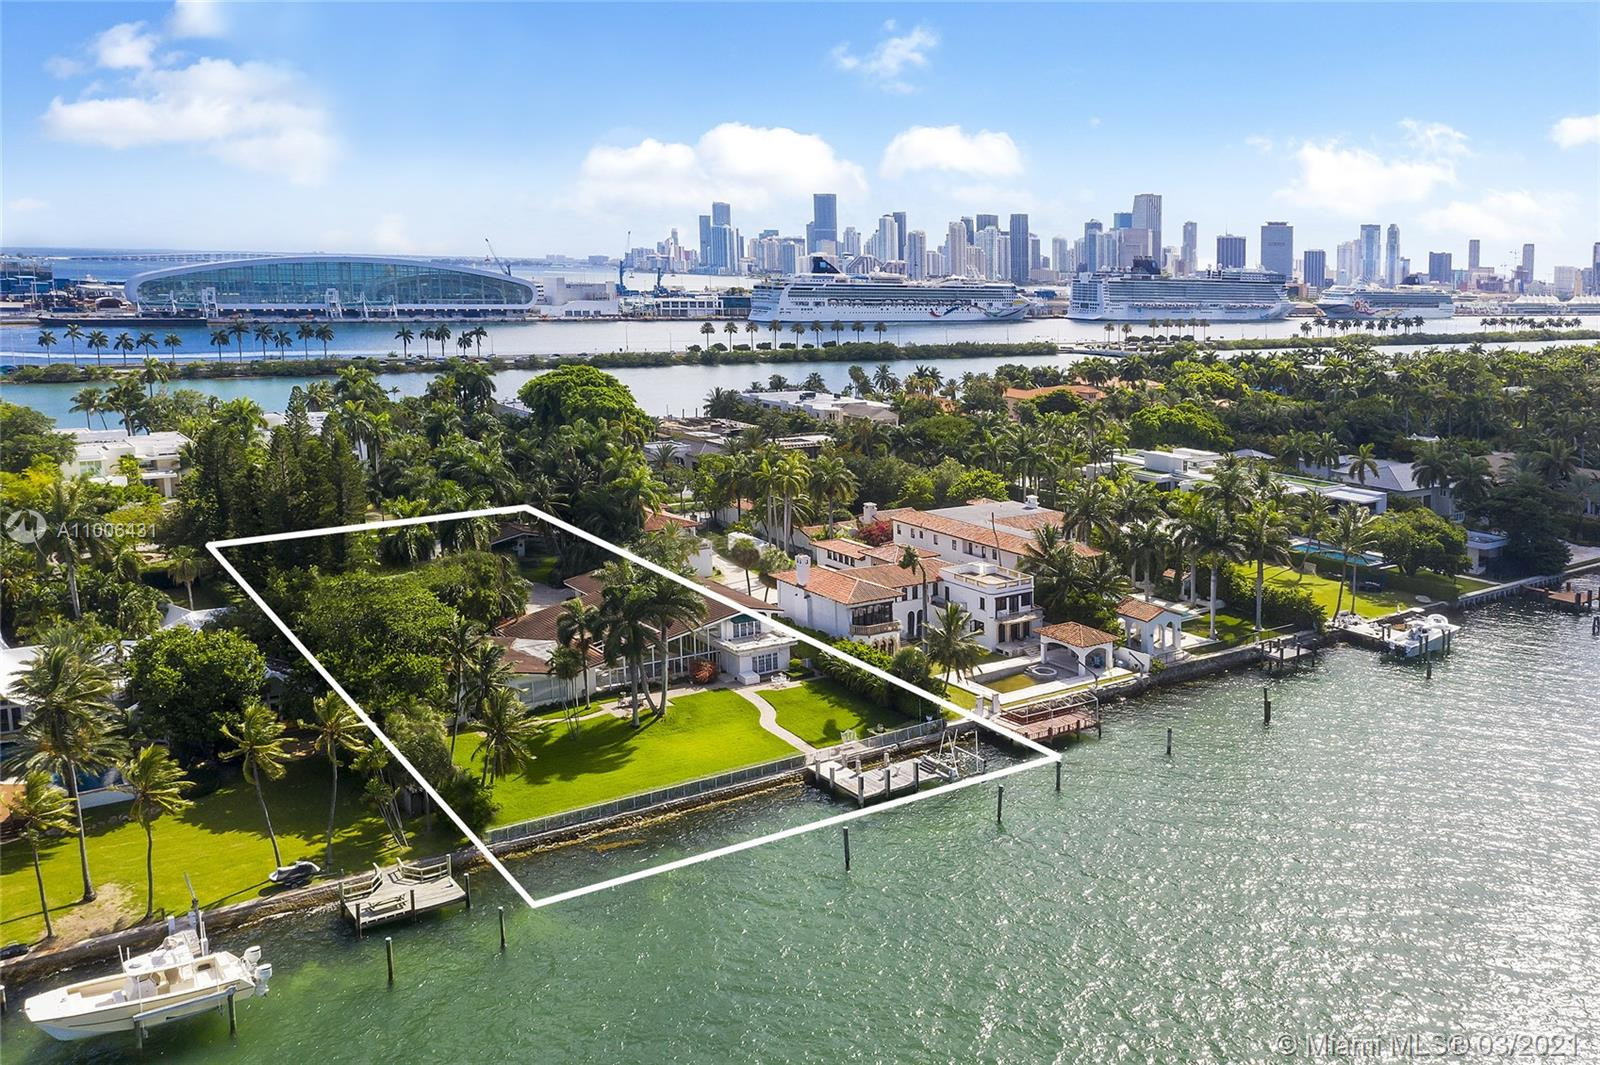 A rare opportunity on the Estate section of guard-gated Palm Island with 150' linear wide Biscayne Bay waterfront. The unique 45,000 SF waterfront property ready to build up to 22,500 SF home, with plenty of privacy. Existing dockage capable of accommodating large vessels. A true gem waiting to be rediscovered, with hard to find lighted Tennis Court & separate Guest House. Views facing North towards Star Island & Miami Beach. Enjoy all of Palm Island's amenities including tennis & basketball courts, playground and 24 hour police security, centrally located with easy access to all of Greater Miami's main attractions. Owner willing to Develop & deliver a finished new construction home for an asking price of $34M.